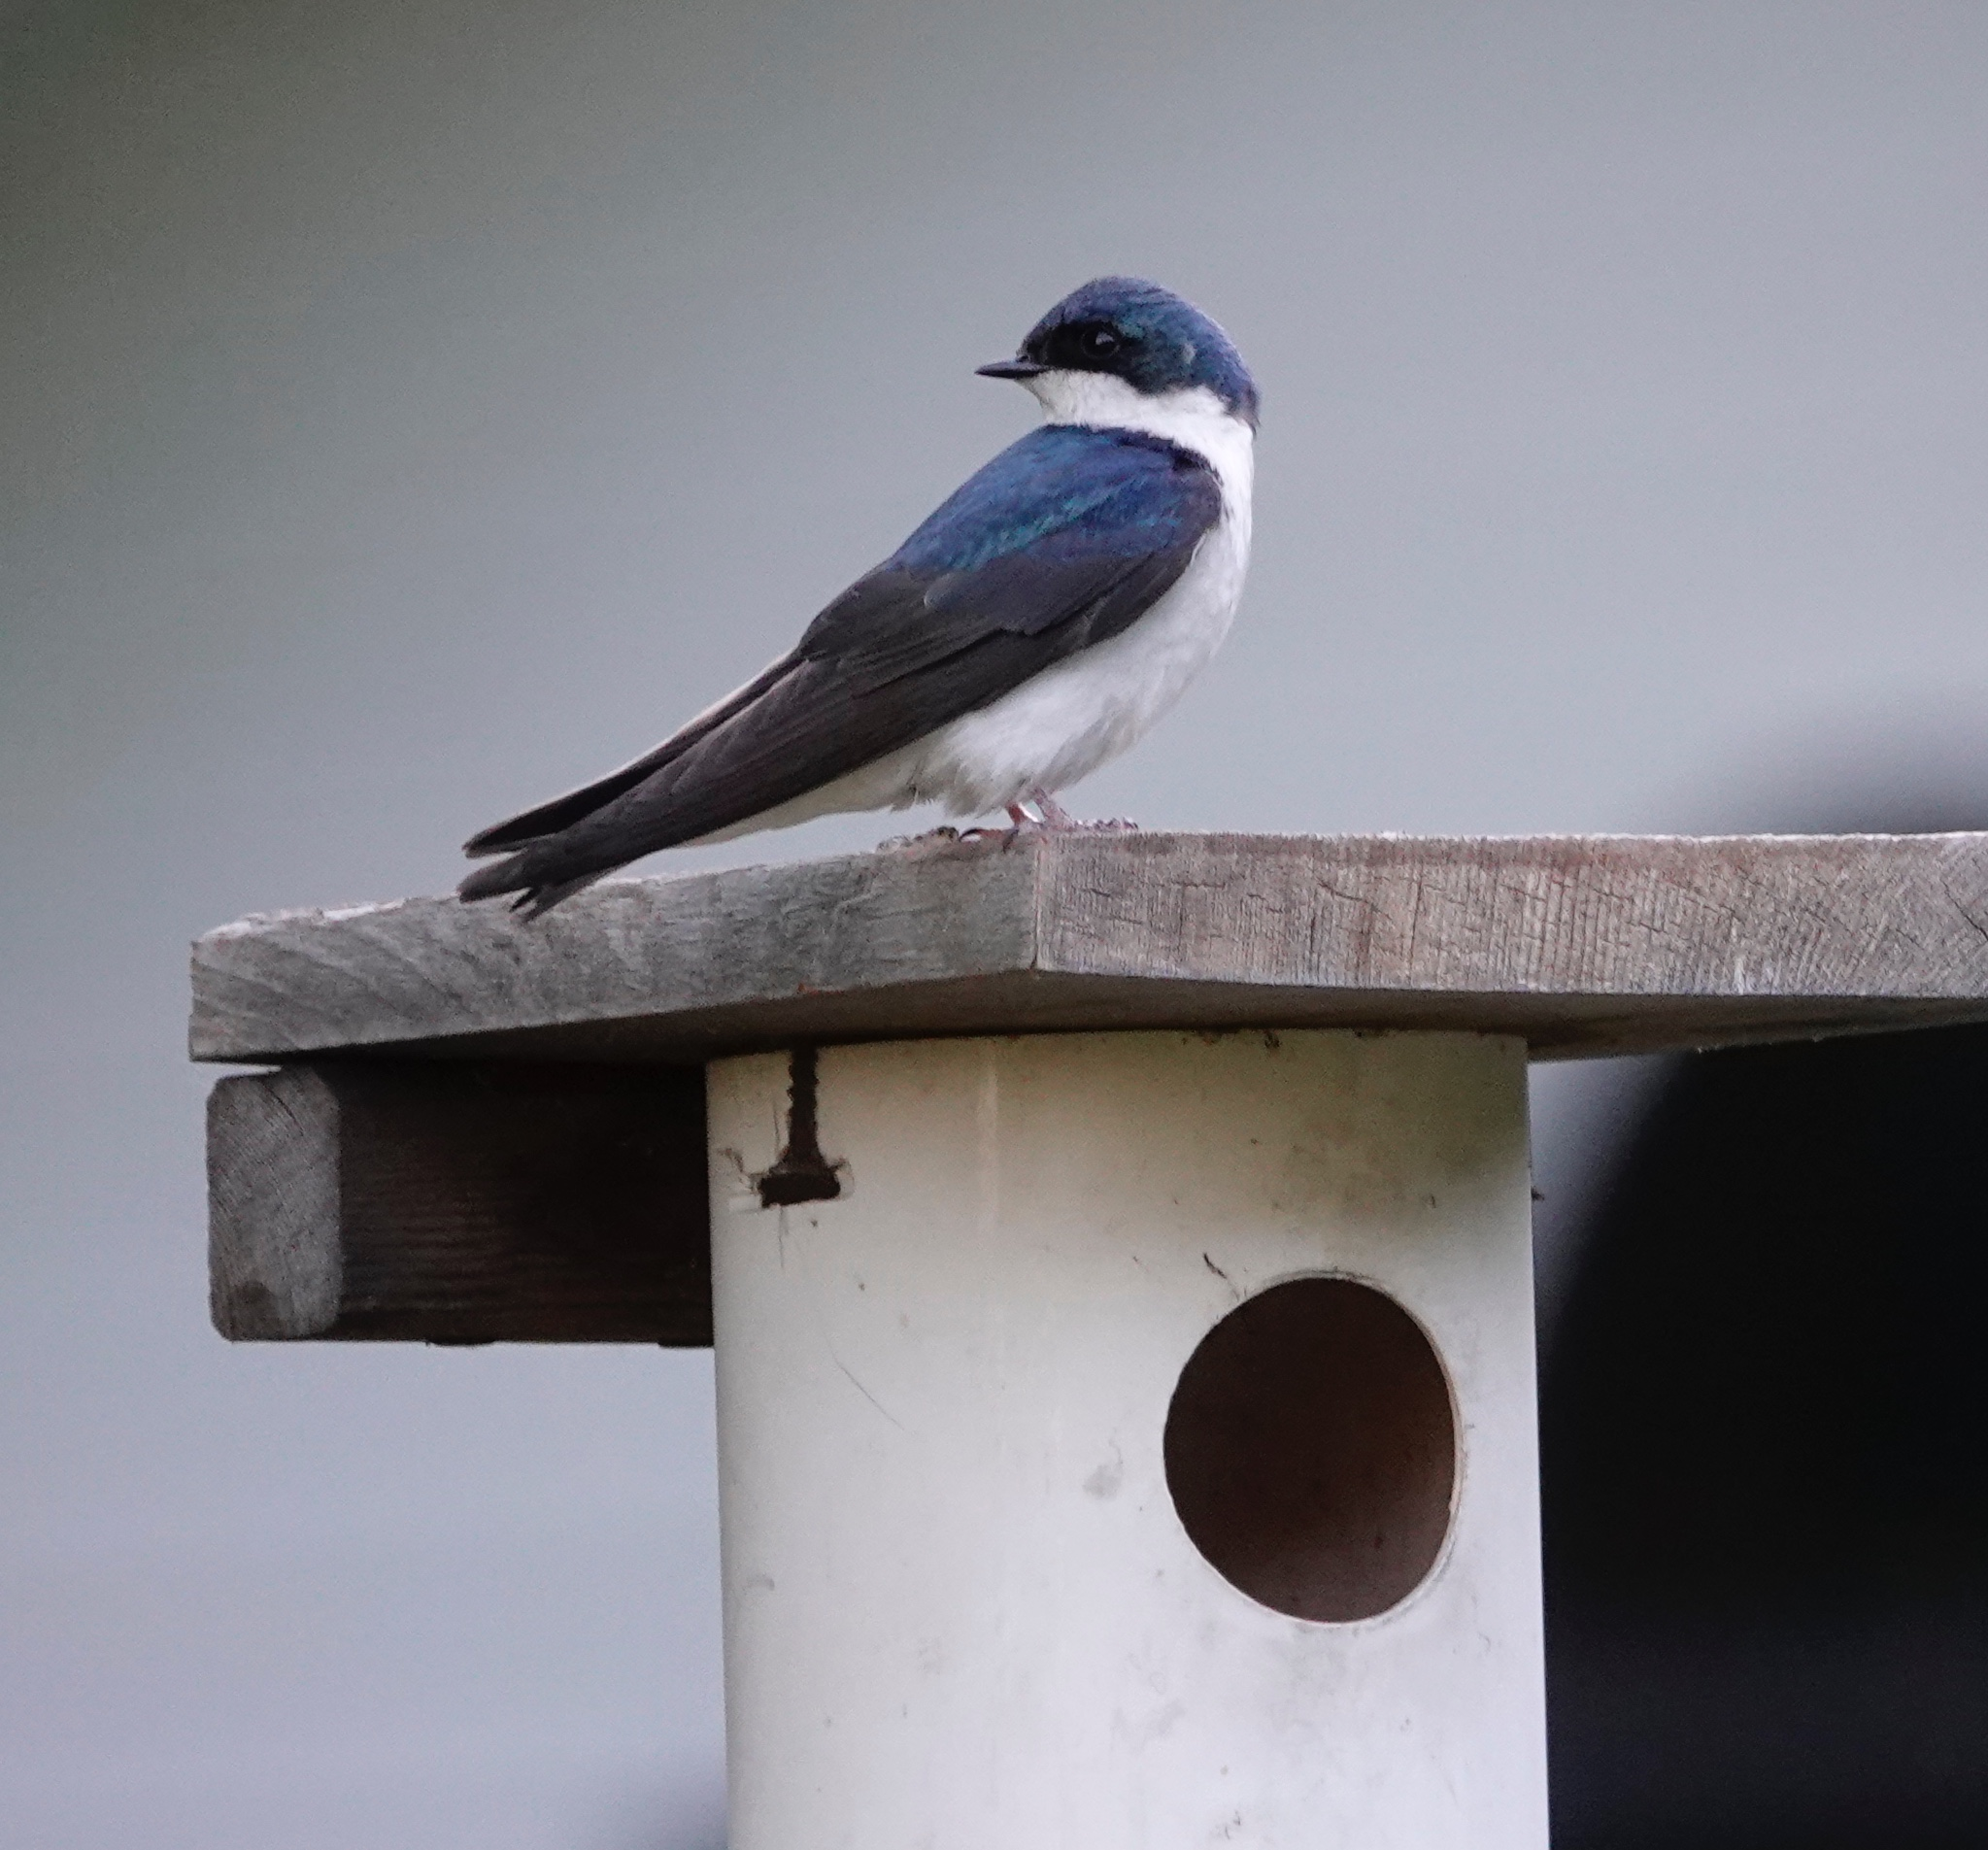 The new neighbors (tree swallows) seem nice.